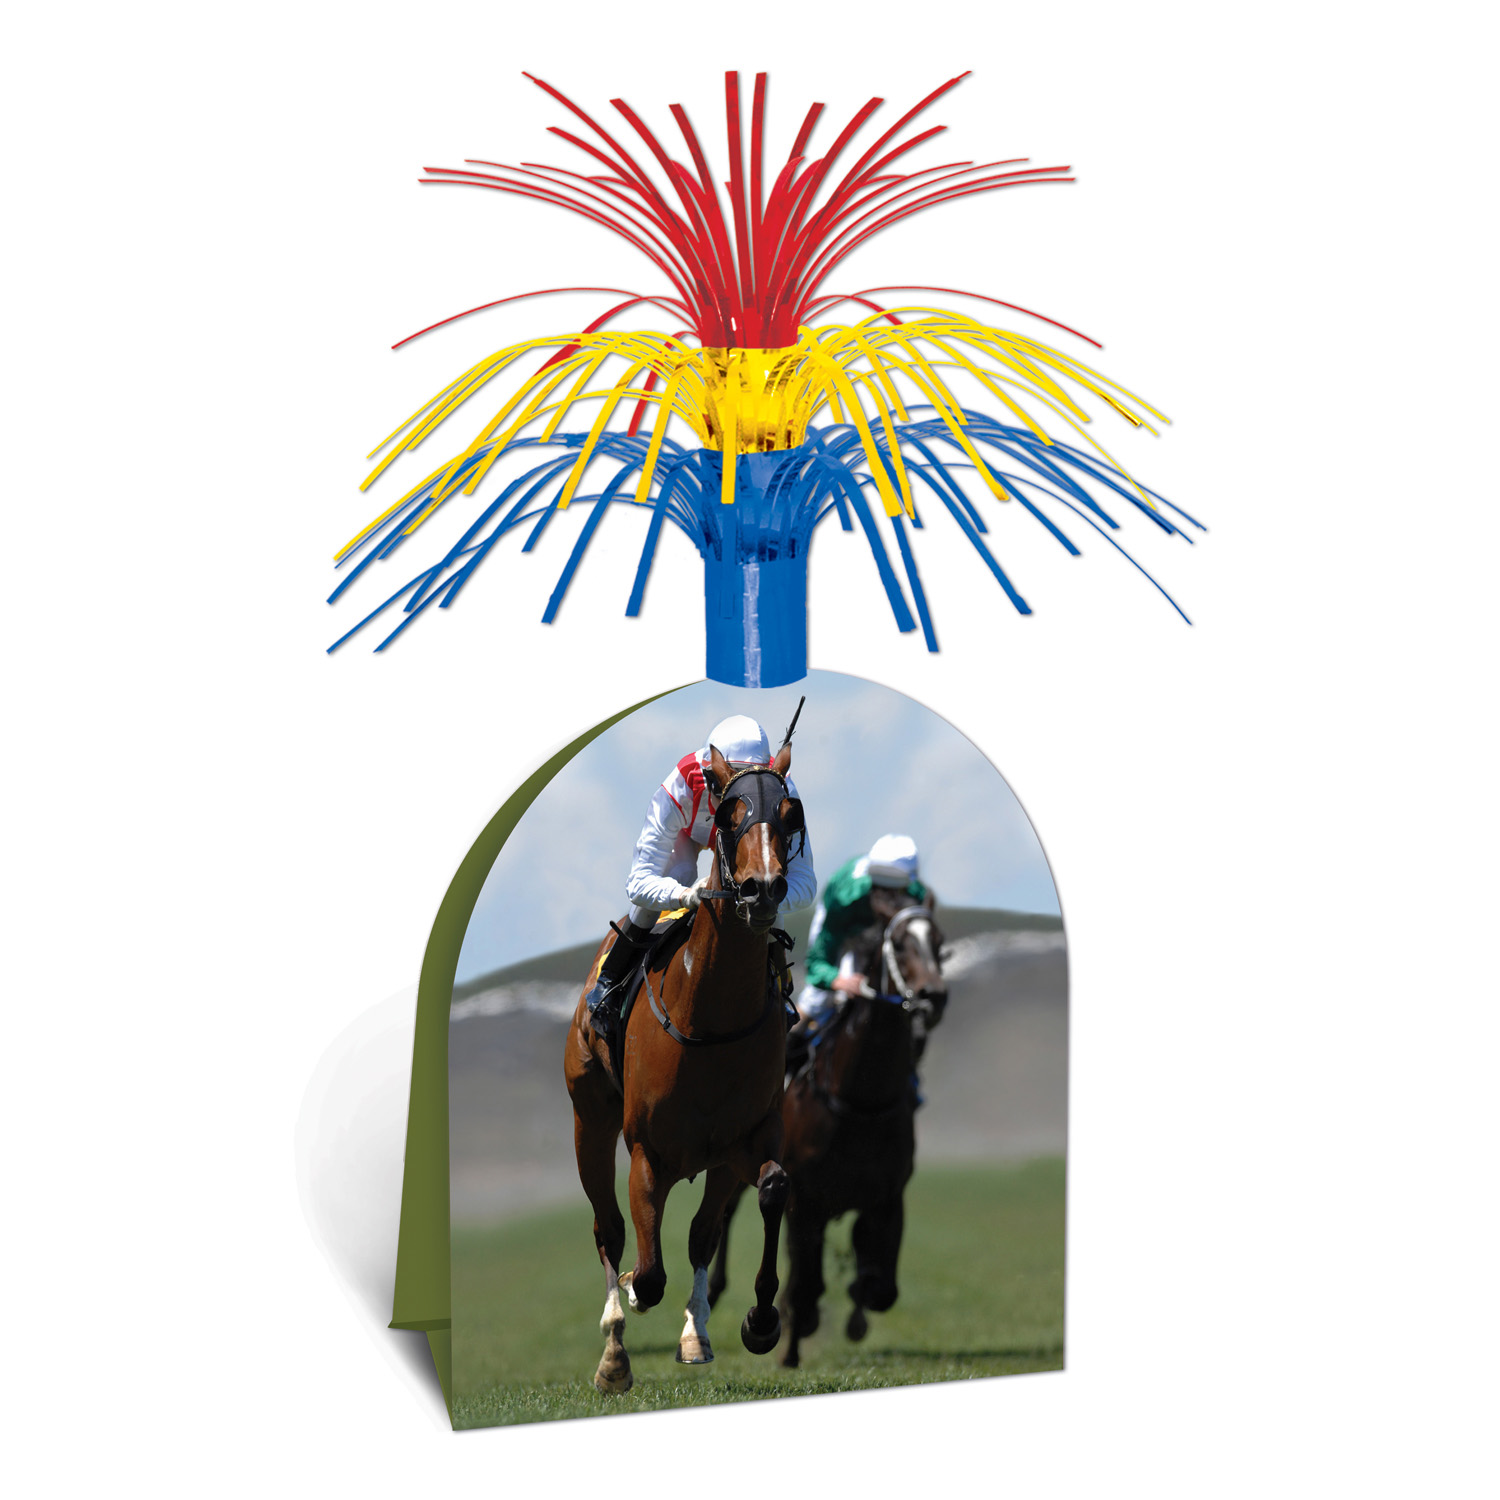 Horse Racing Centerpiece (Pack of 12) Derby, horse, horse racing, table centerpiece, sports